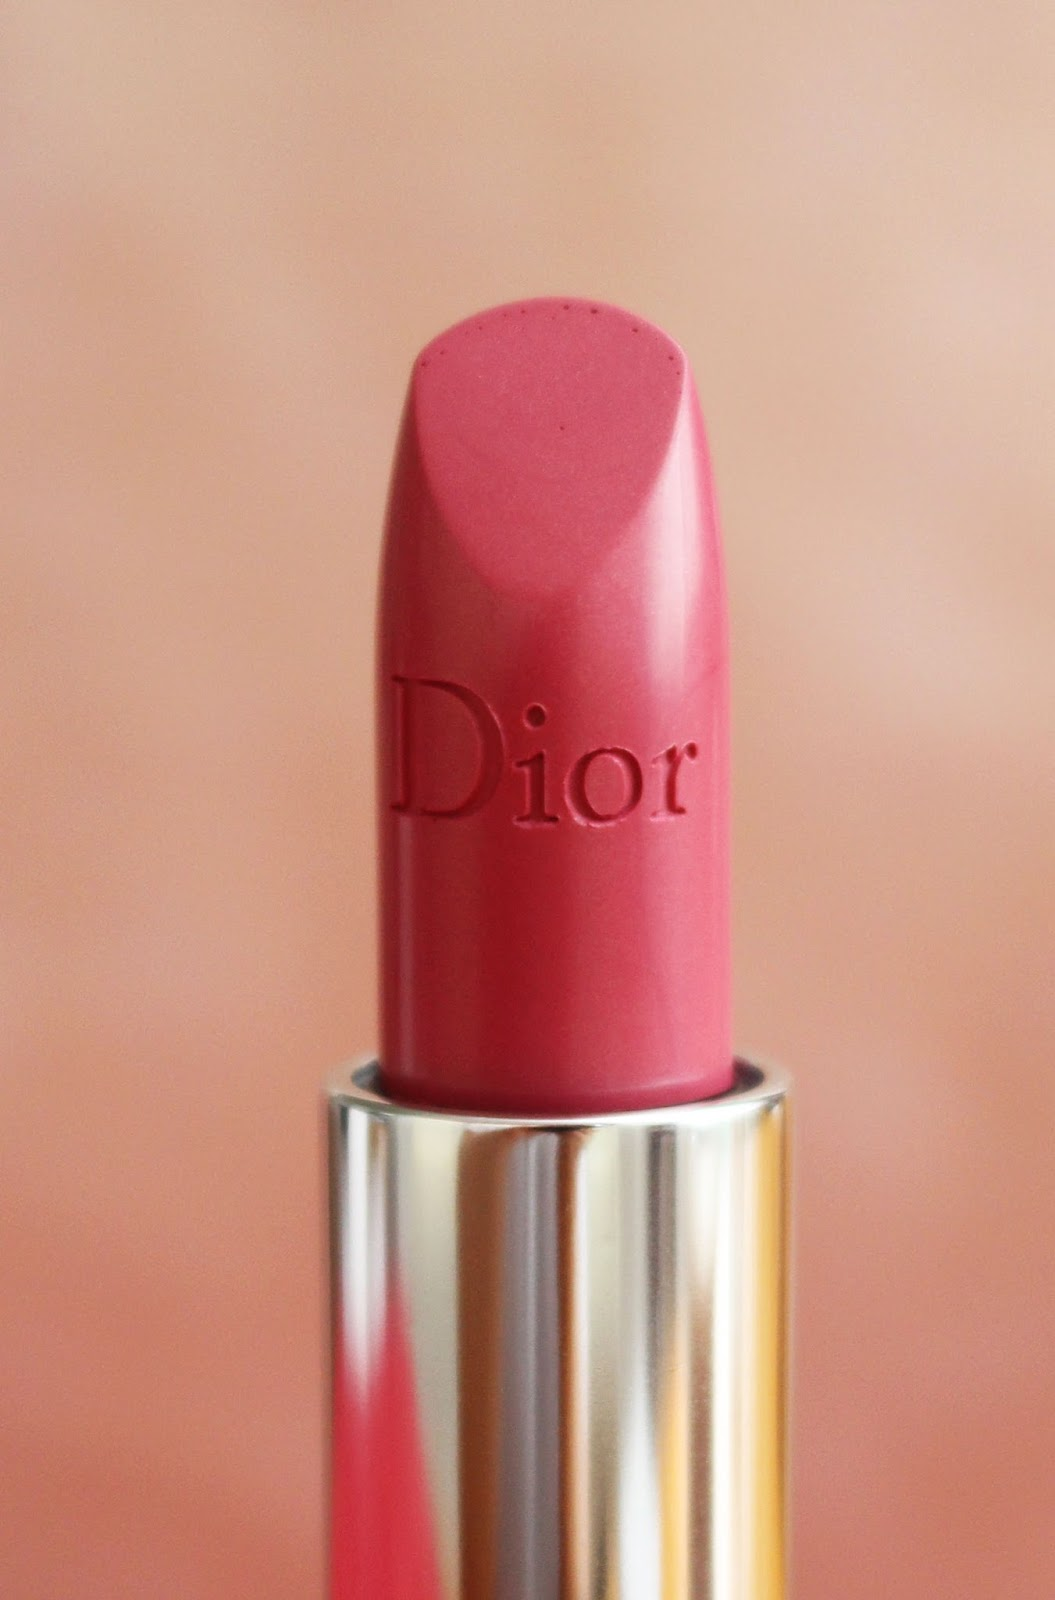 Red Lips Vs Nude Lips with What Makeup Match Dior?